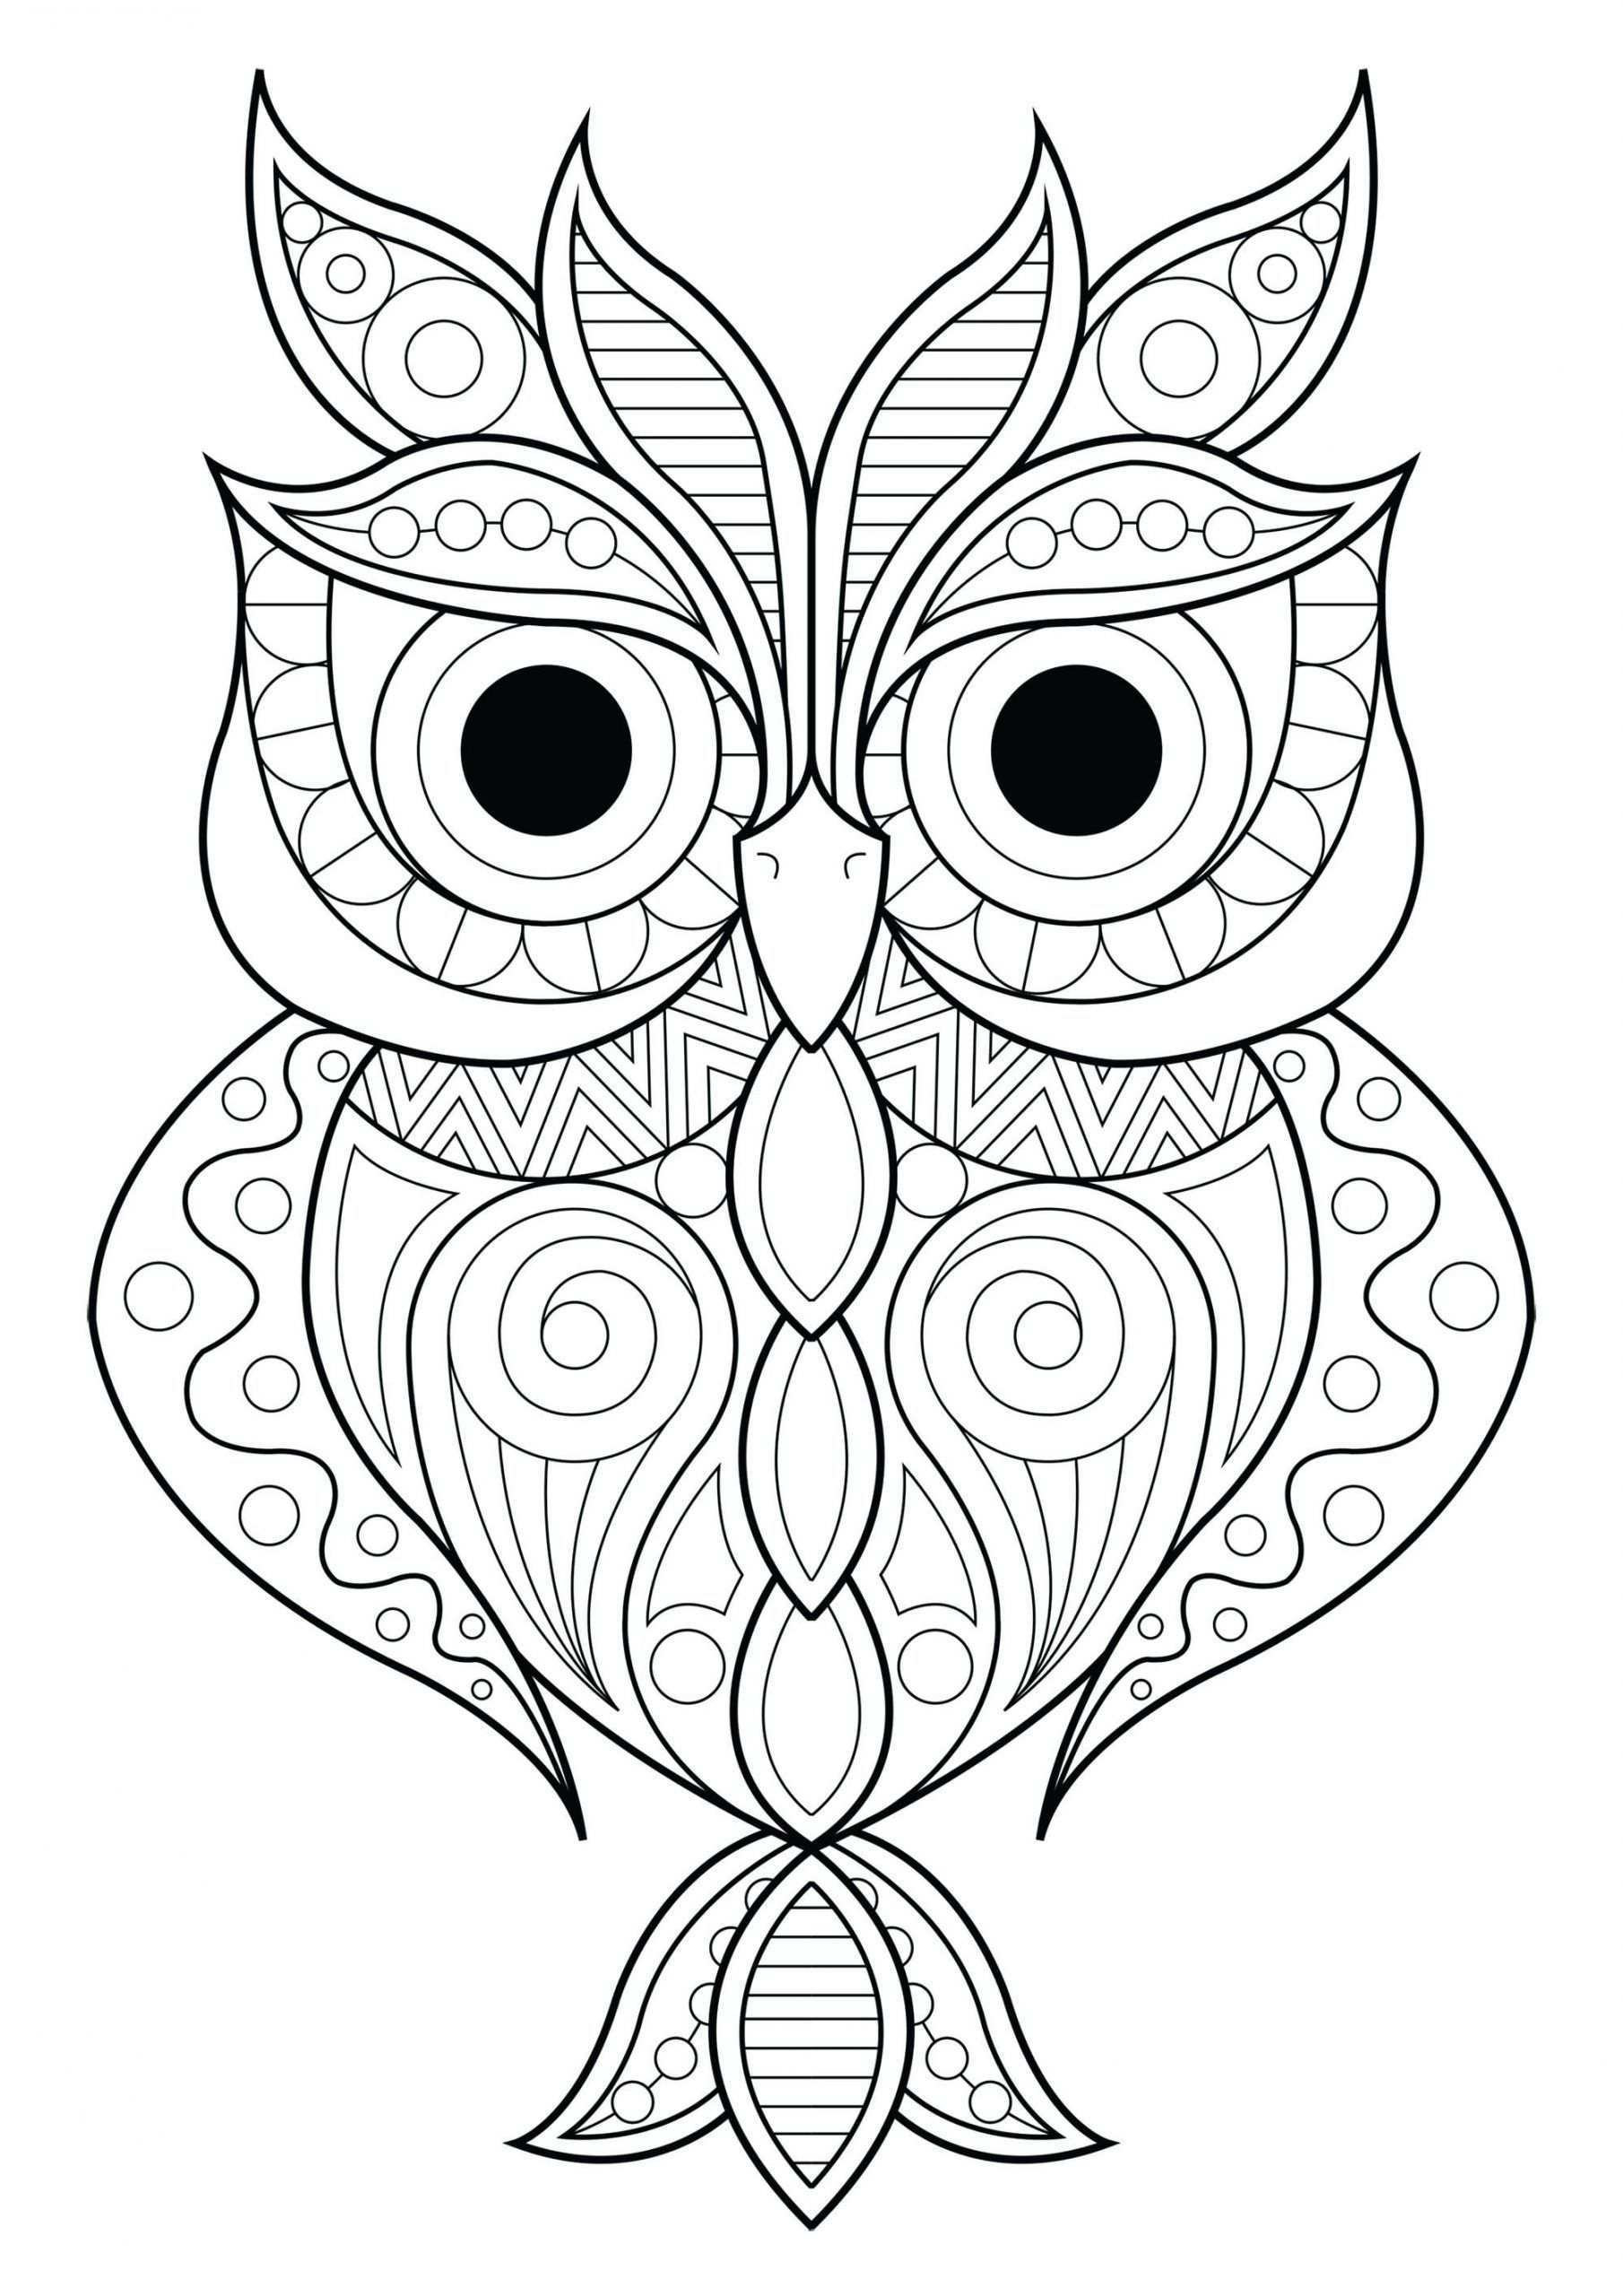 Volwassen Kleuren Uilen 2 Volwassen Kleuren Uilen 2 In 2020 Owl Coloring Pages Animal Coloring Pages Mandala Coloring Pages